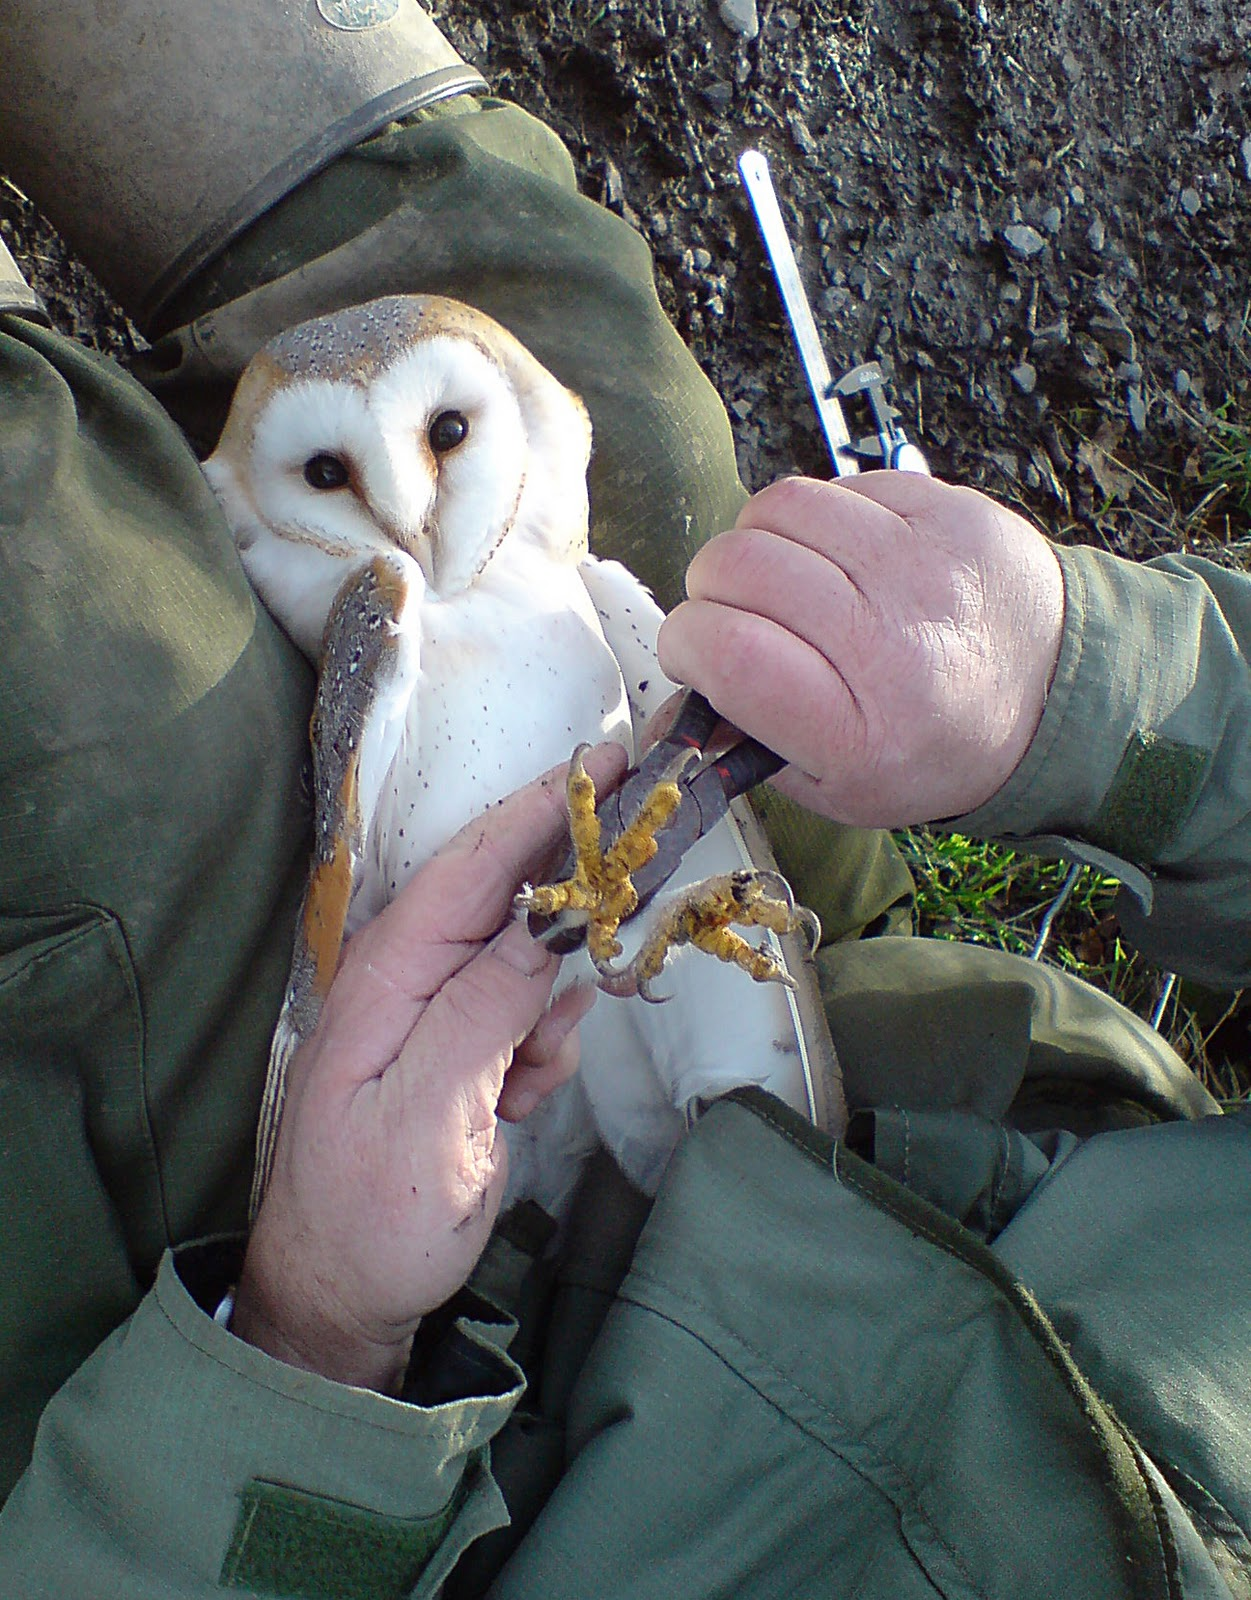 Ruffled feathers things looking up for montgomeryshire for What owls look like without feathers